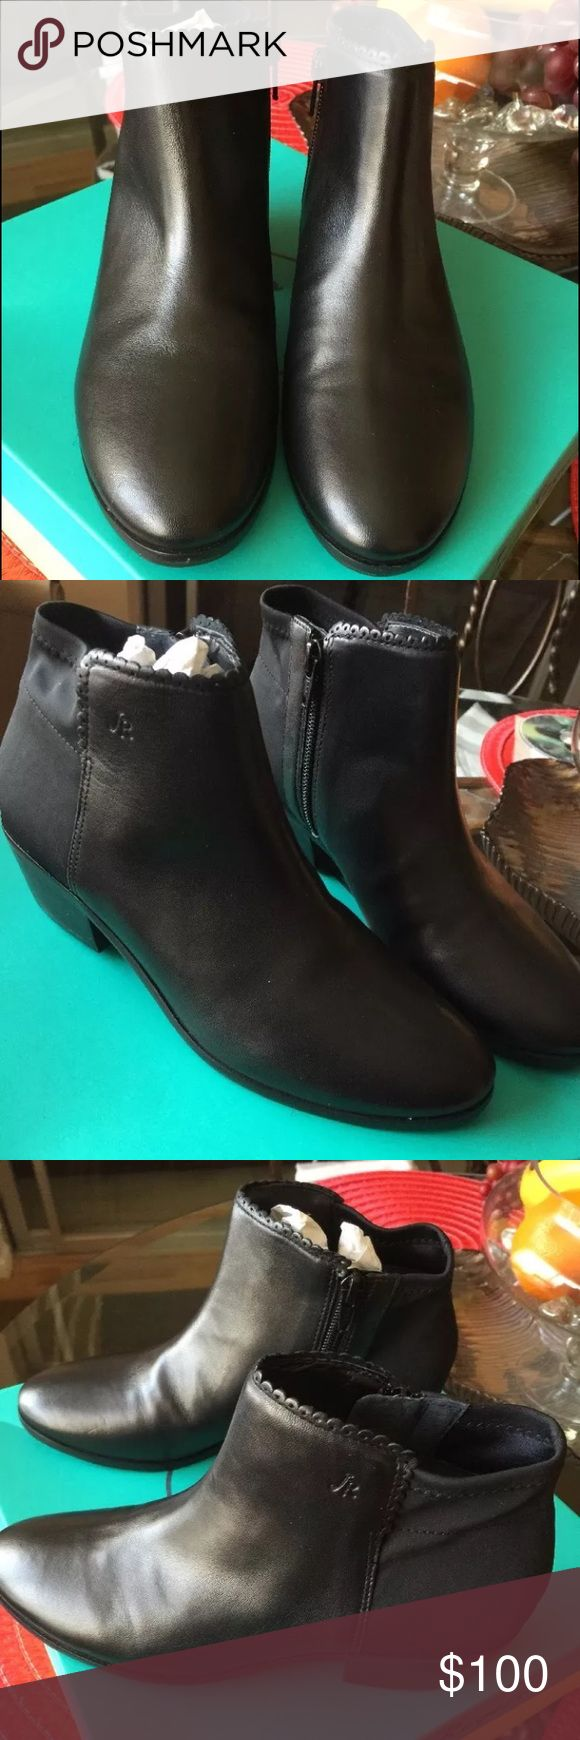 Jack Rogers Bailee bootie size 8 Brand new with box Jack Rogers booties size 8 Jack Rogers Shoes Ankle Boots & Booties